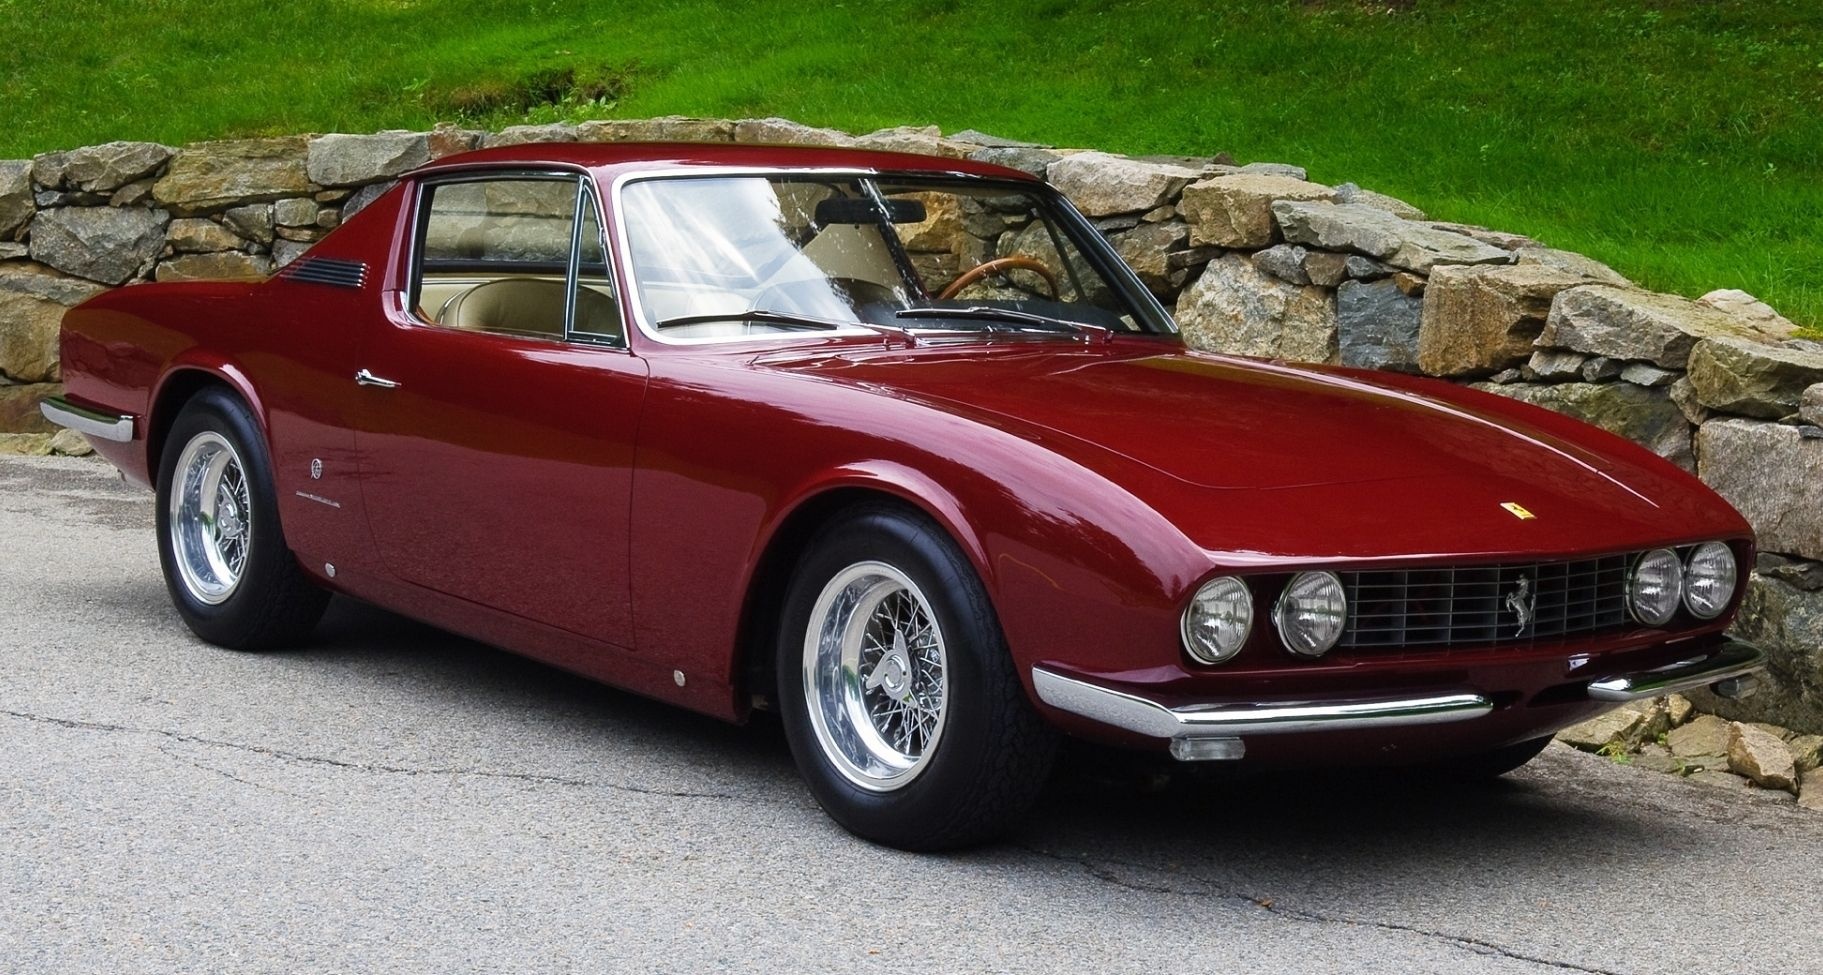 Ferrari 330 Gt Michelotti Coupe Only Cars And Cars